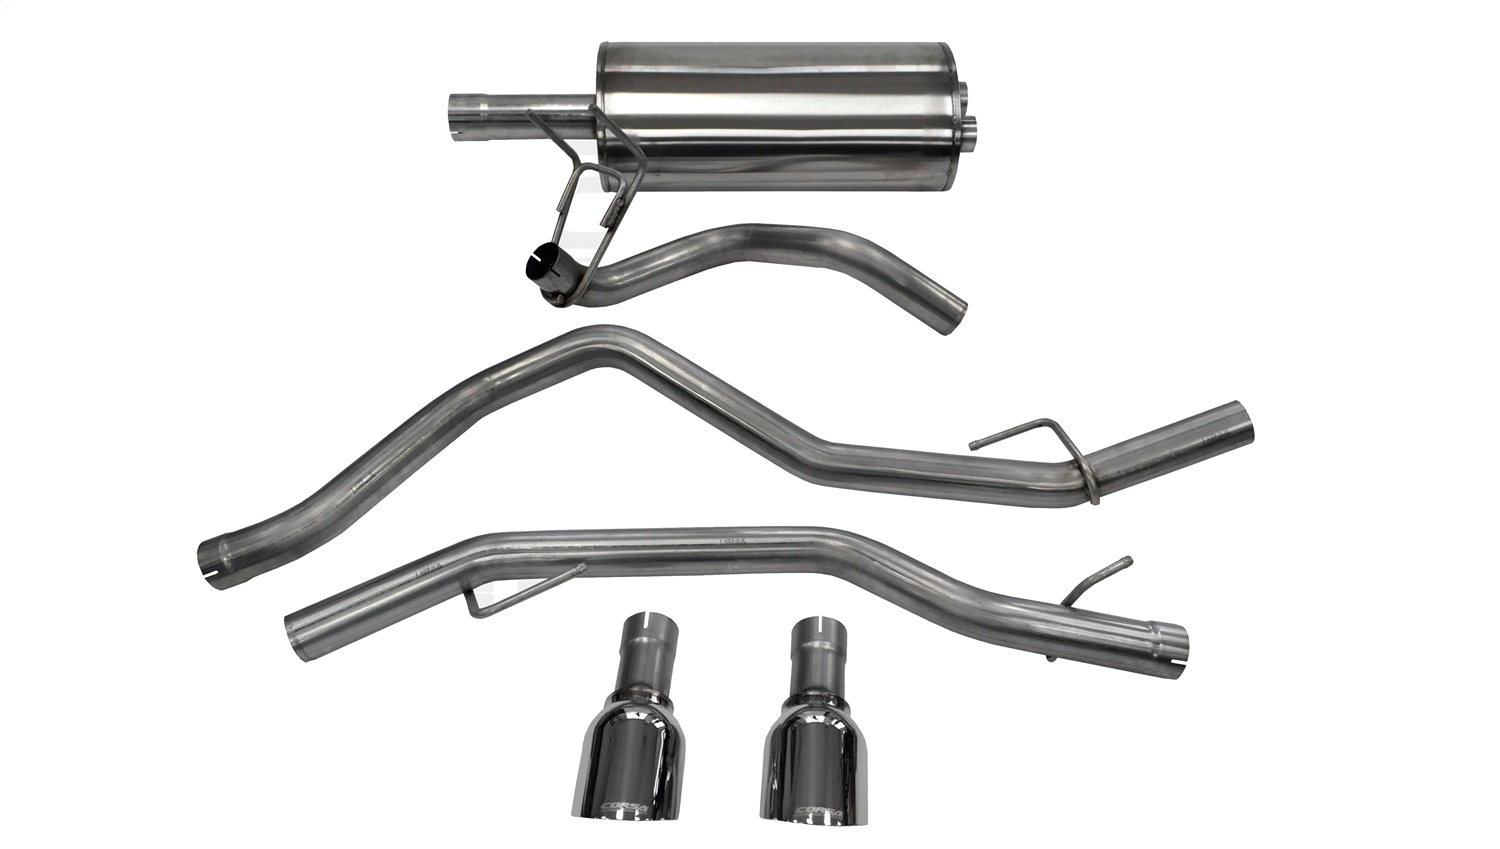 Corsa Performance 14405 Sport Cat-Back Exhaust System Fits 1500 1500 Classic